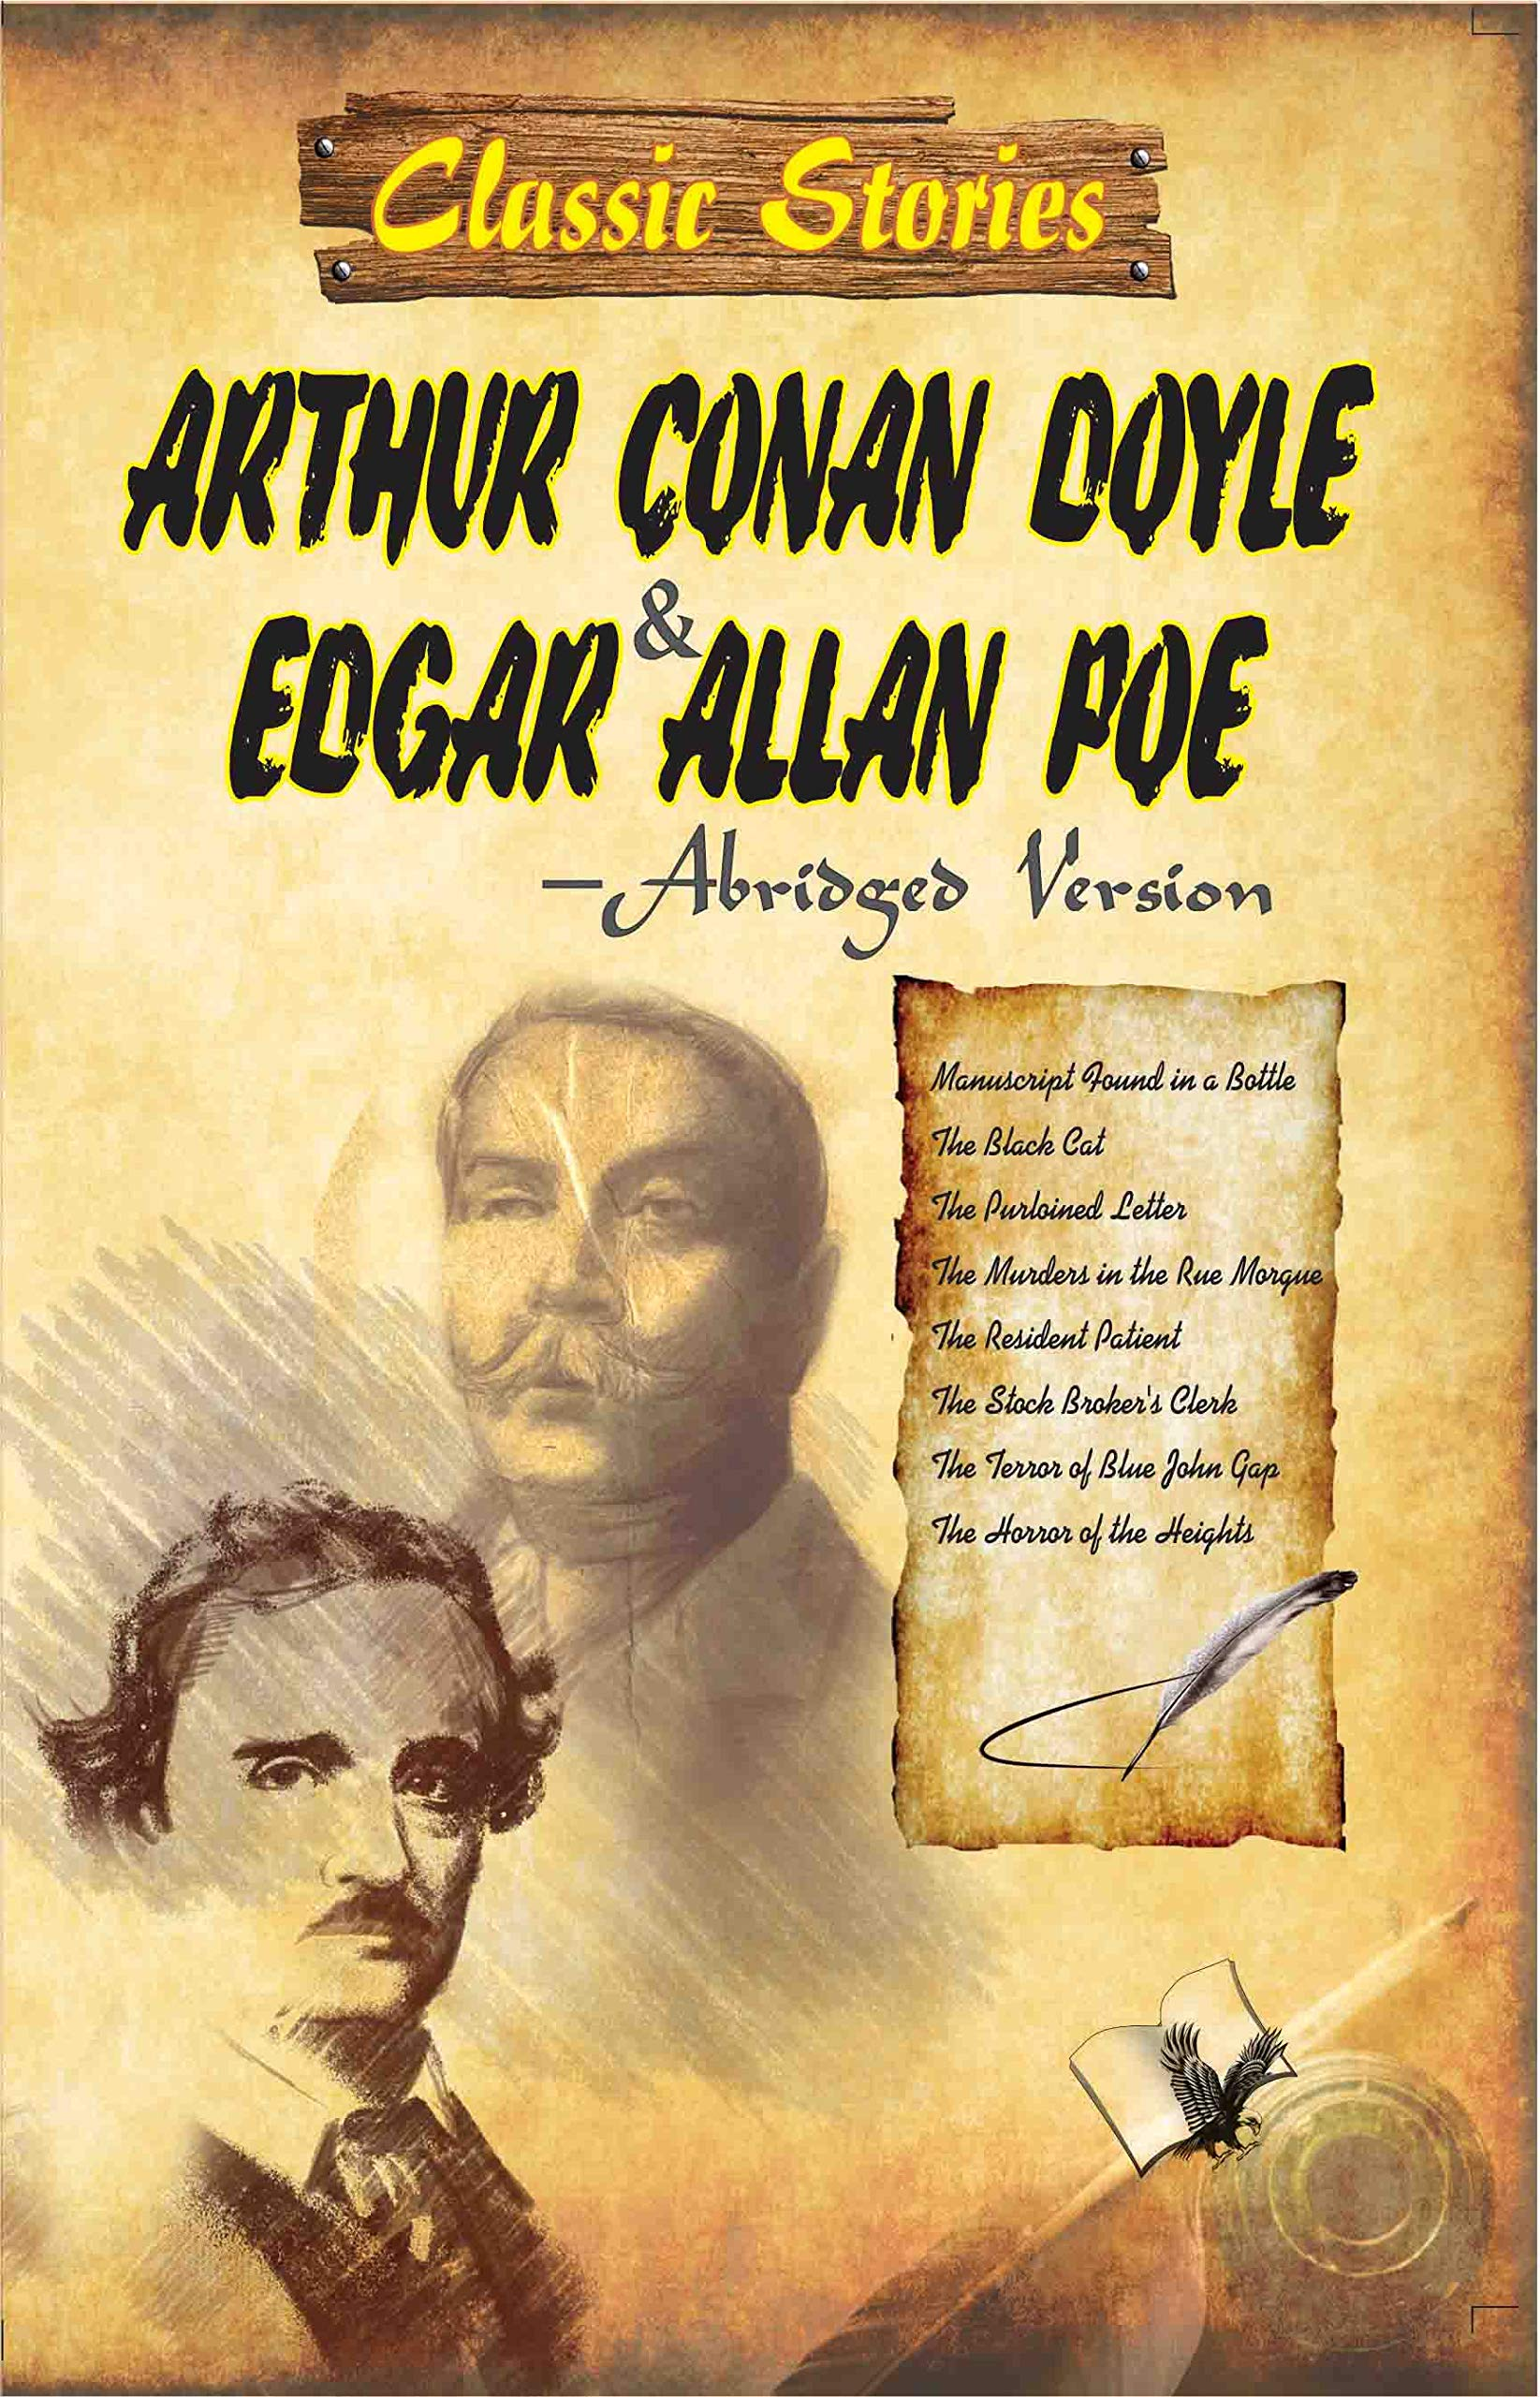 CLASSIC STORIES OF ARTHUR CONAN COYLE EDGAR & ALLAN POE: 8 FAST-PACED STORIES OF THRILL AND EXCITEMENT